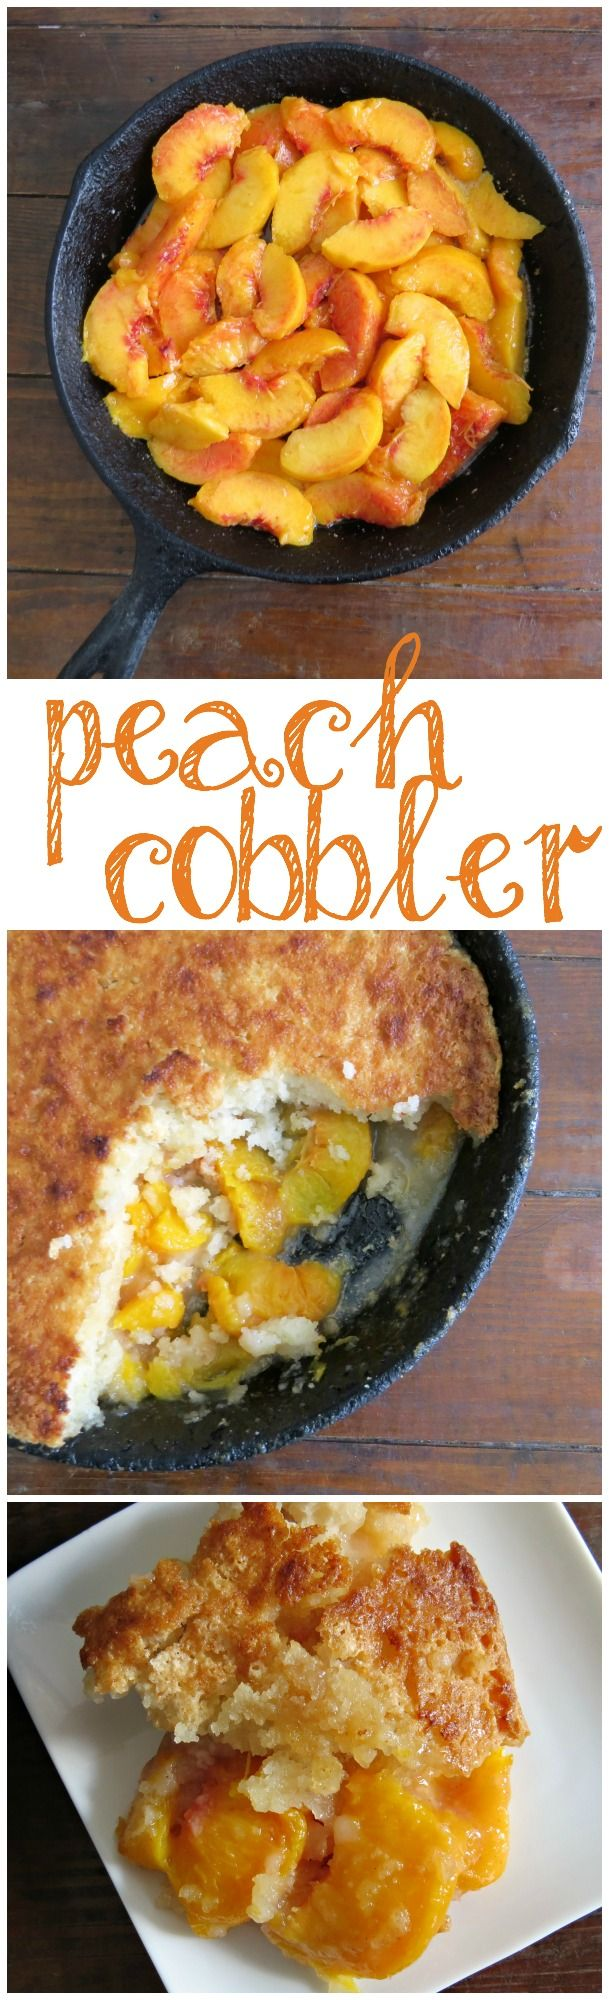 Easy Skillet Peach Cobbler Recipe - Written Reality                                                                                                                                                                                 More